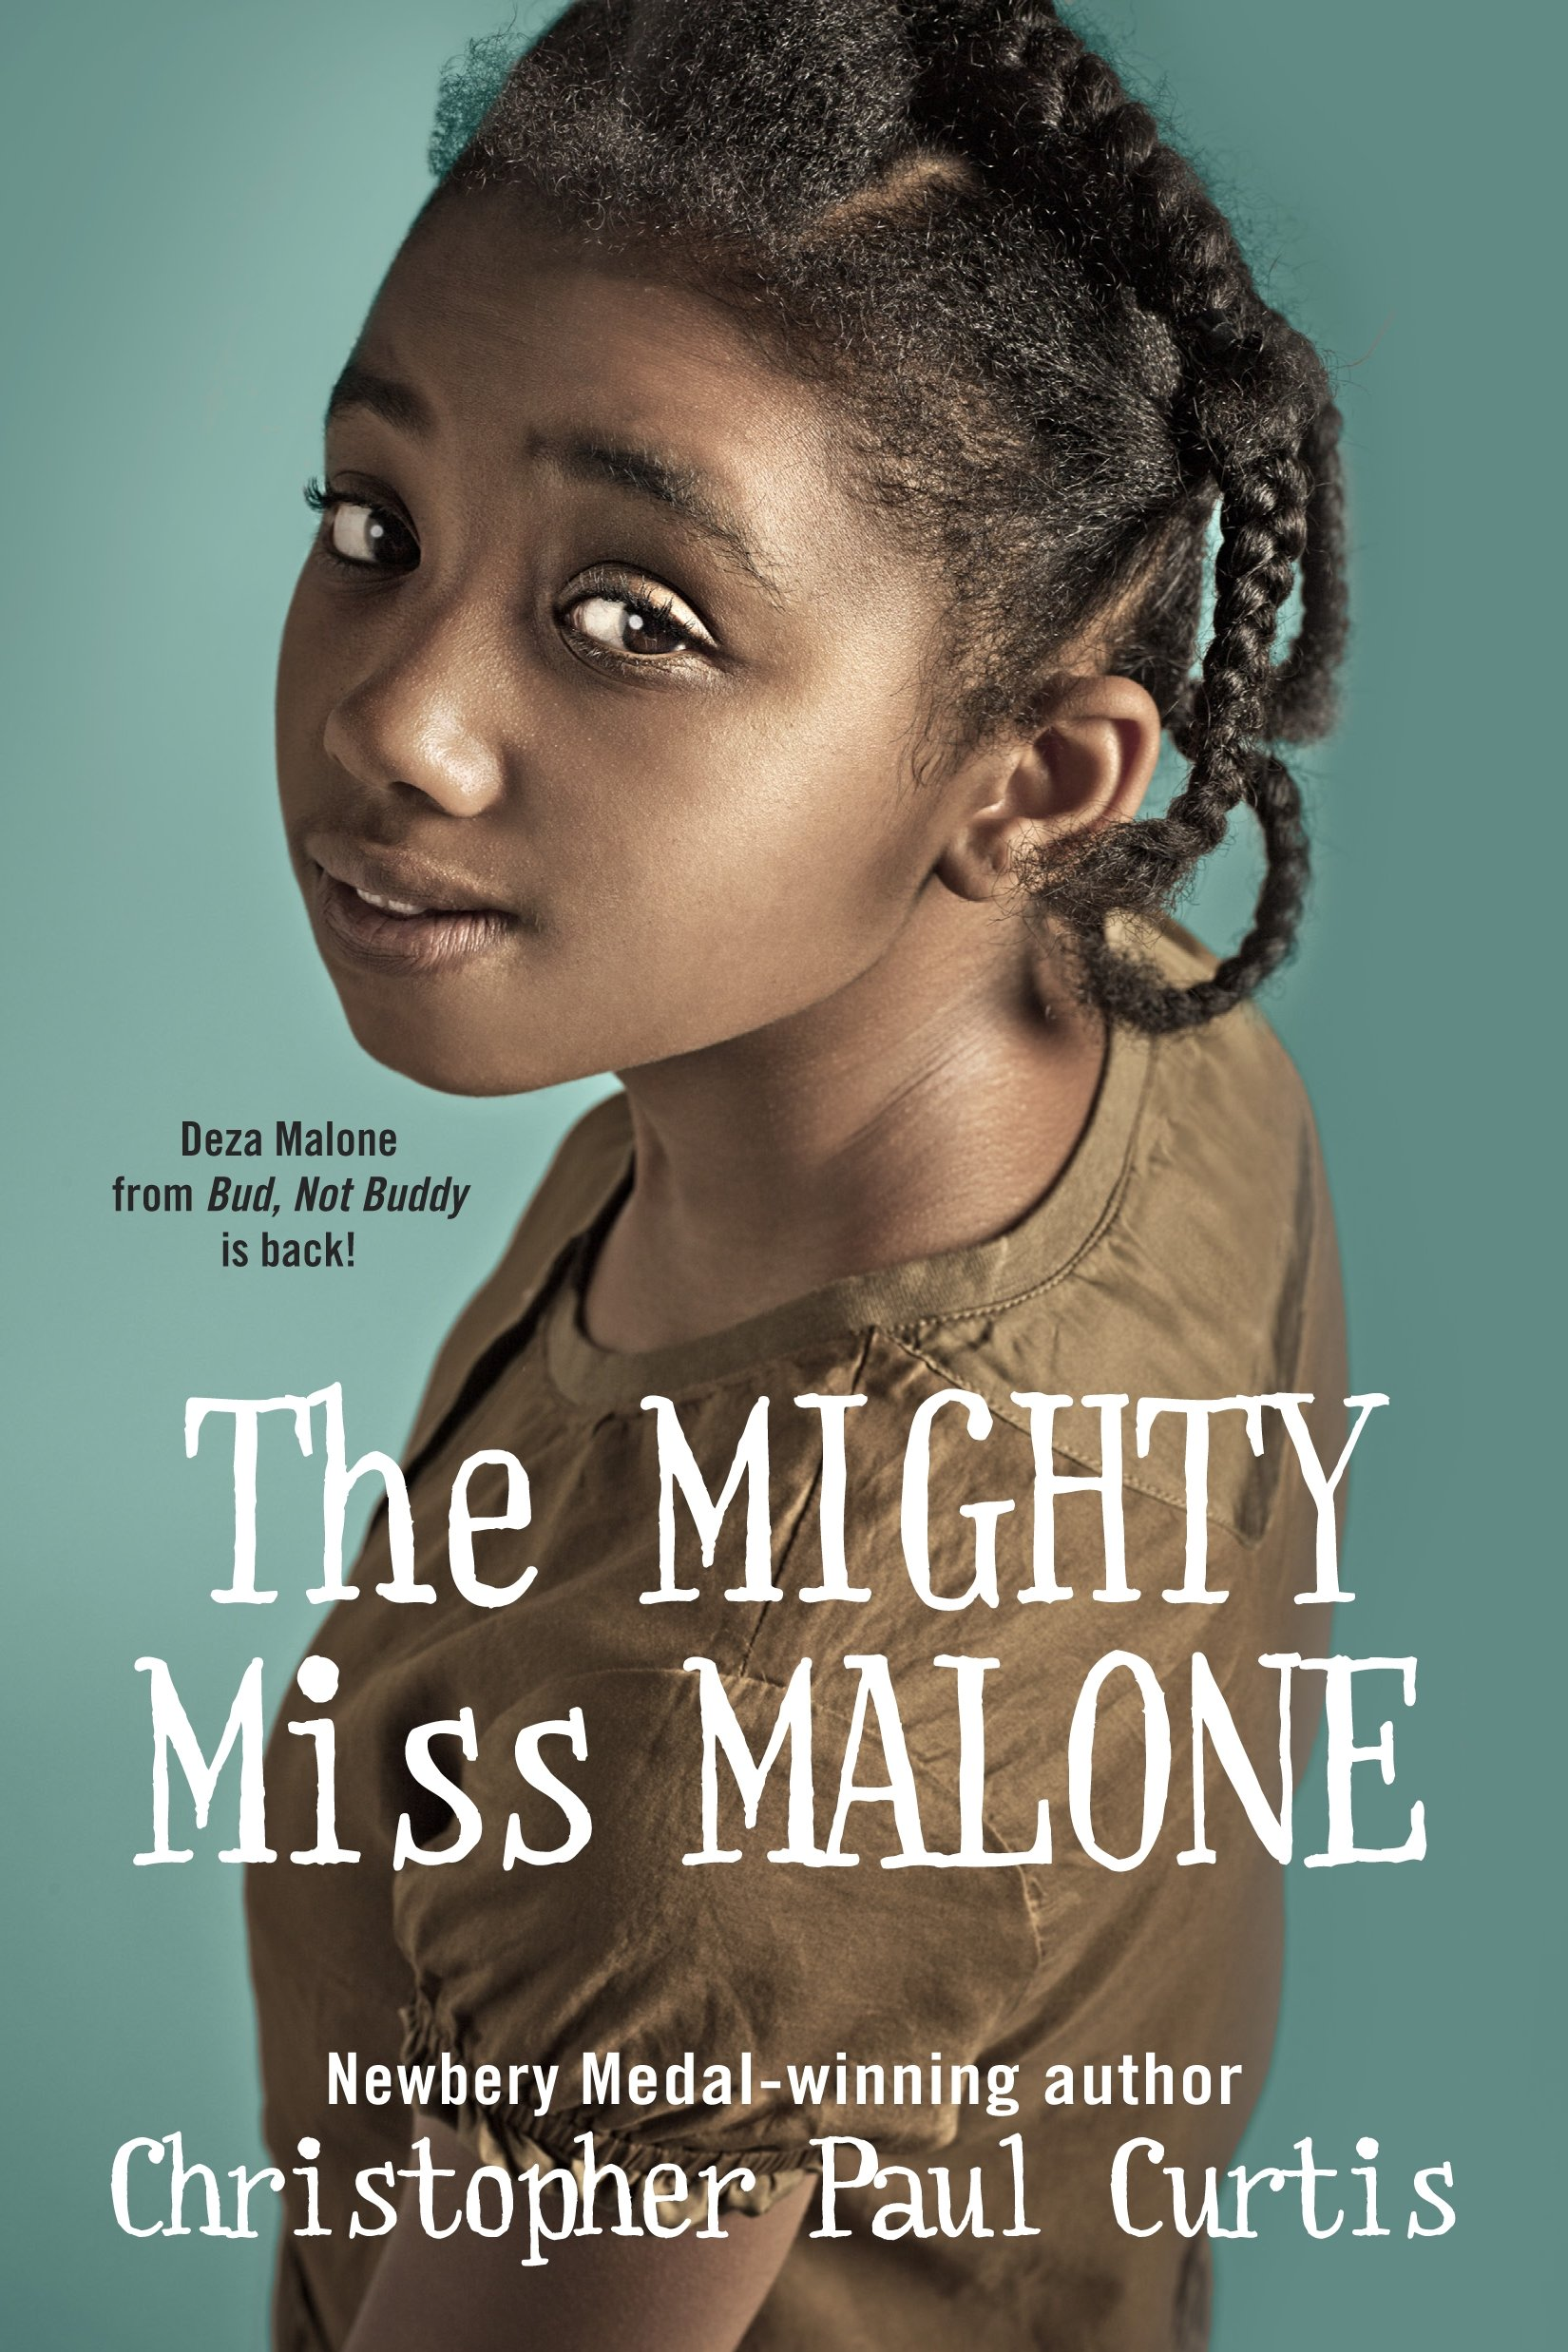 The Mighty Miss Malone 30 of The Best Middle School Read-Aloud Books